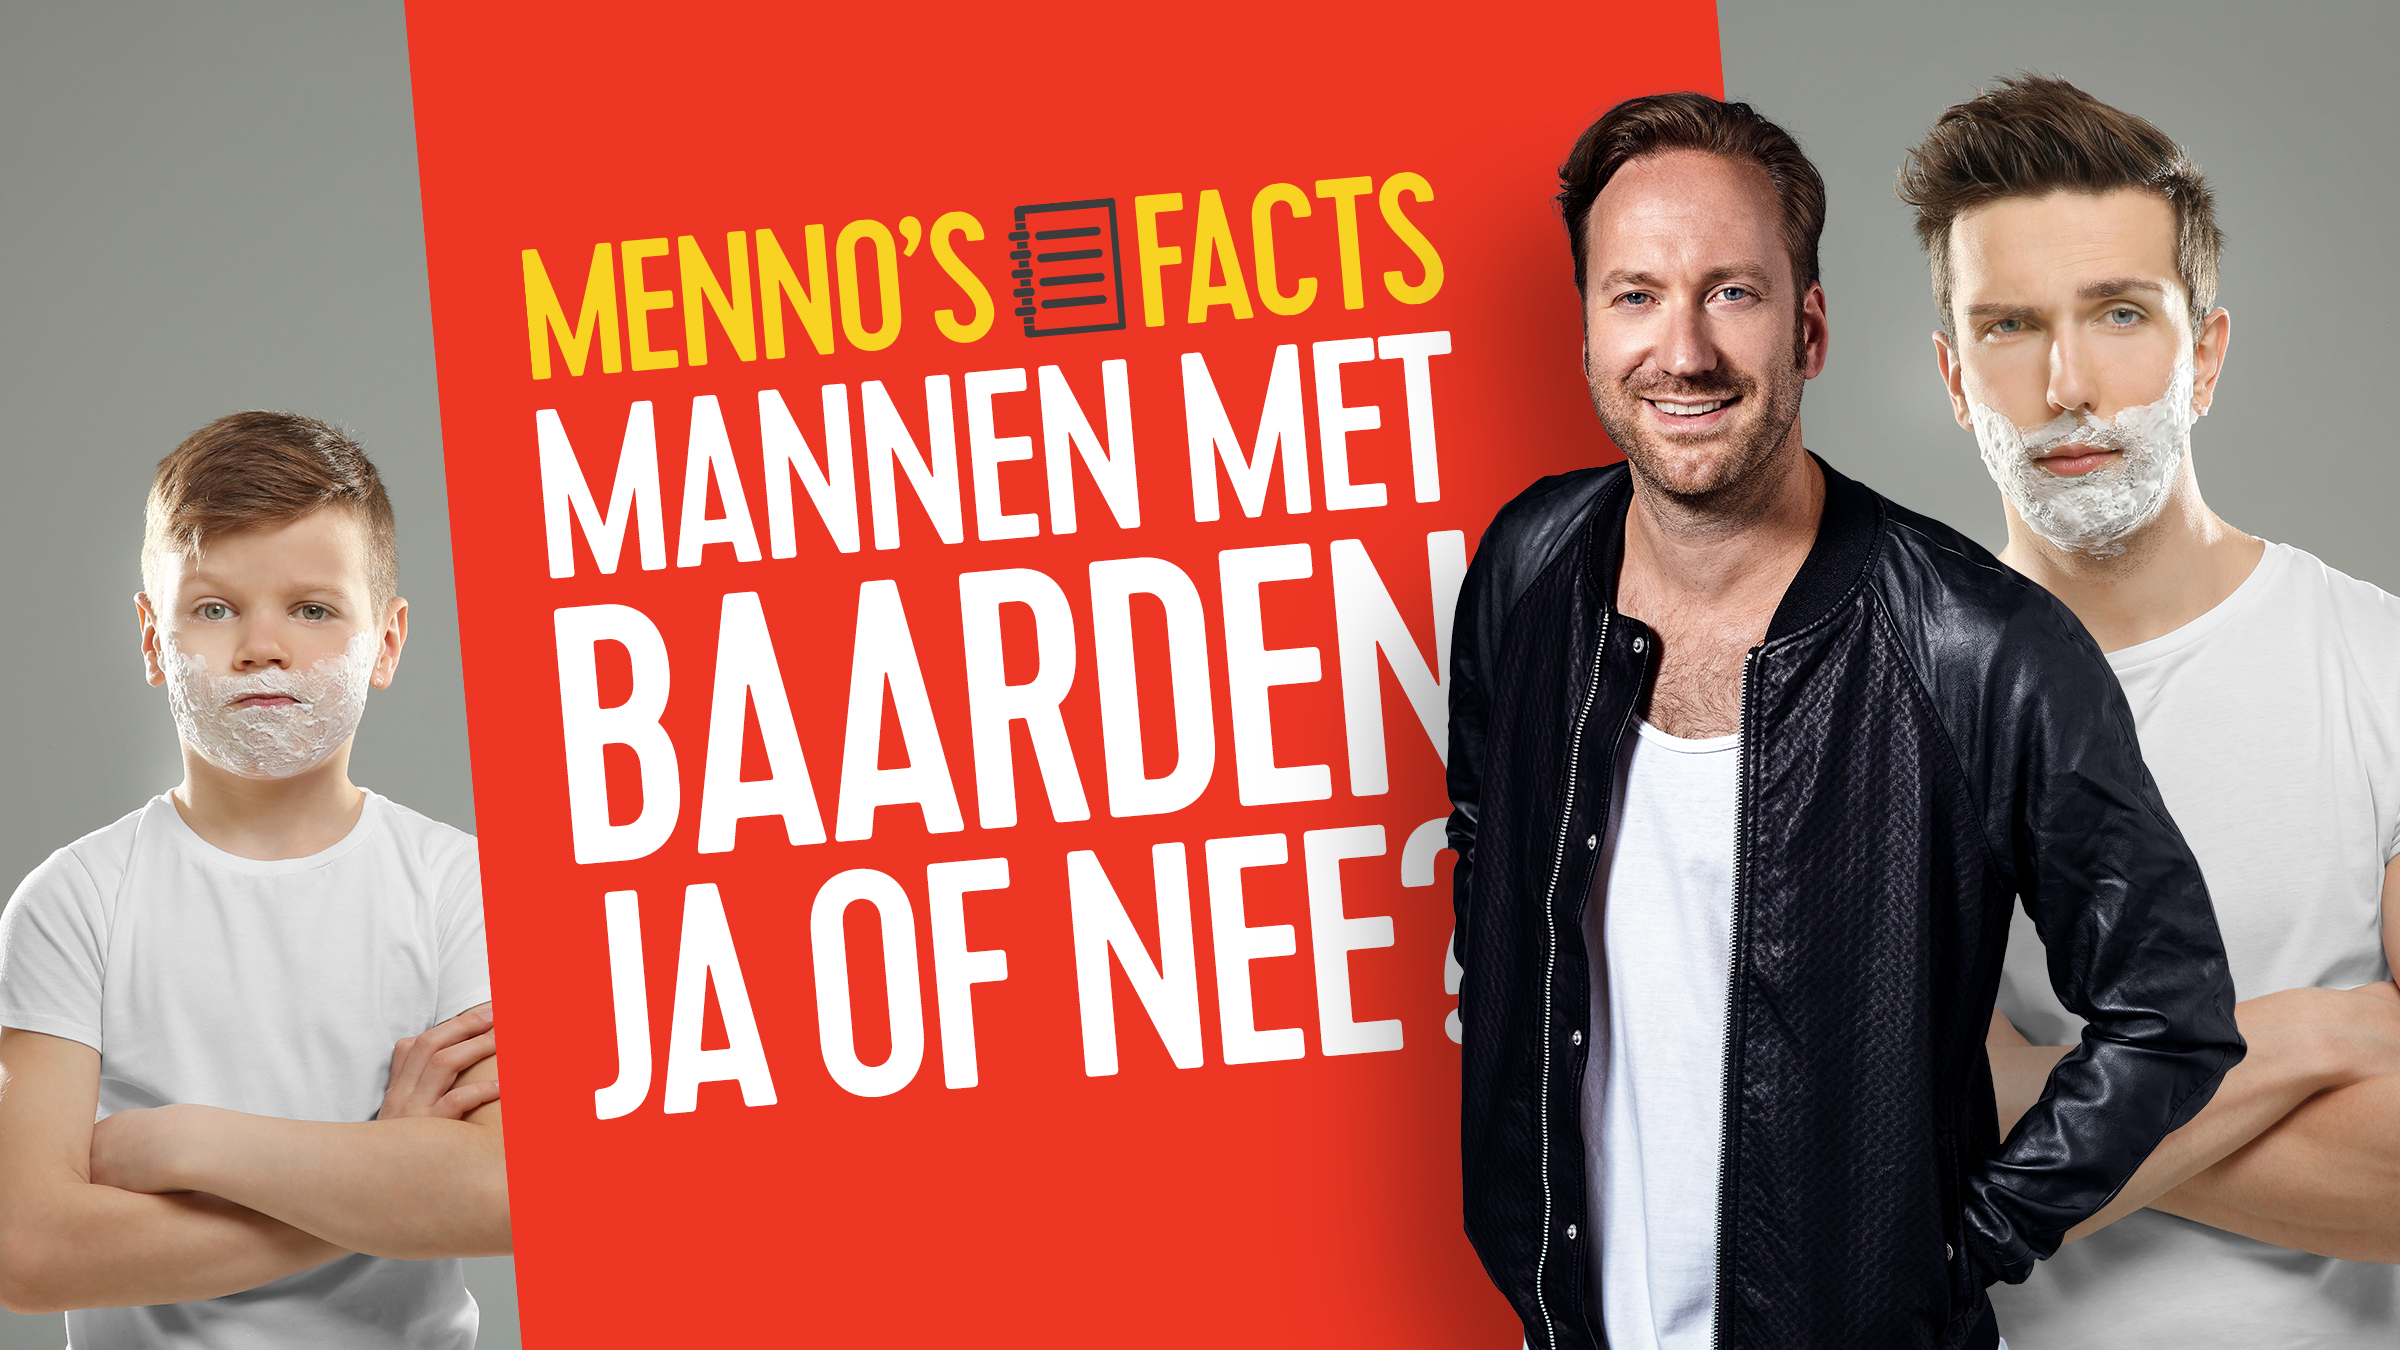 Baarden teaser basis mennosfacts17